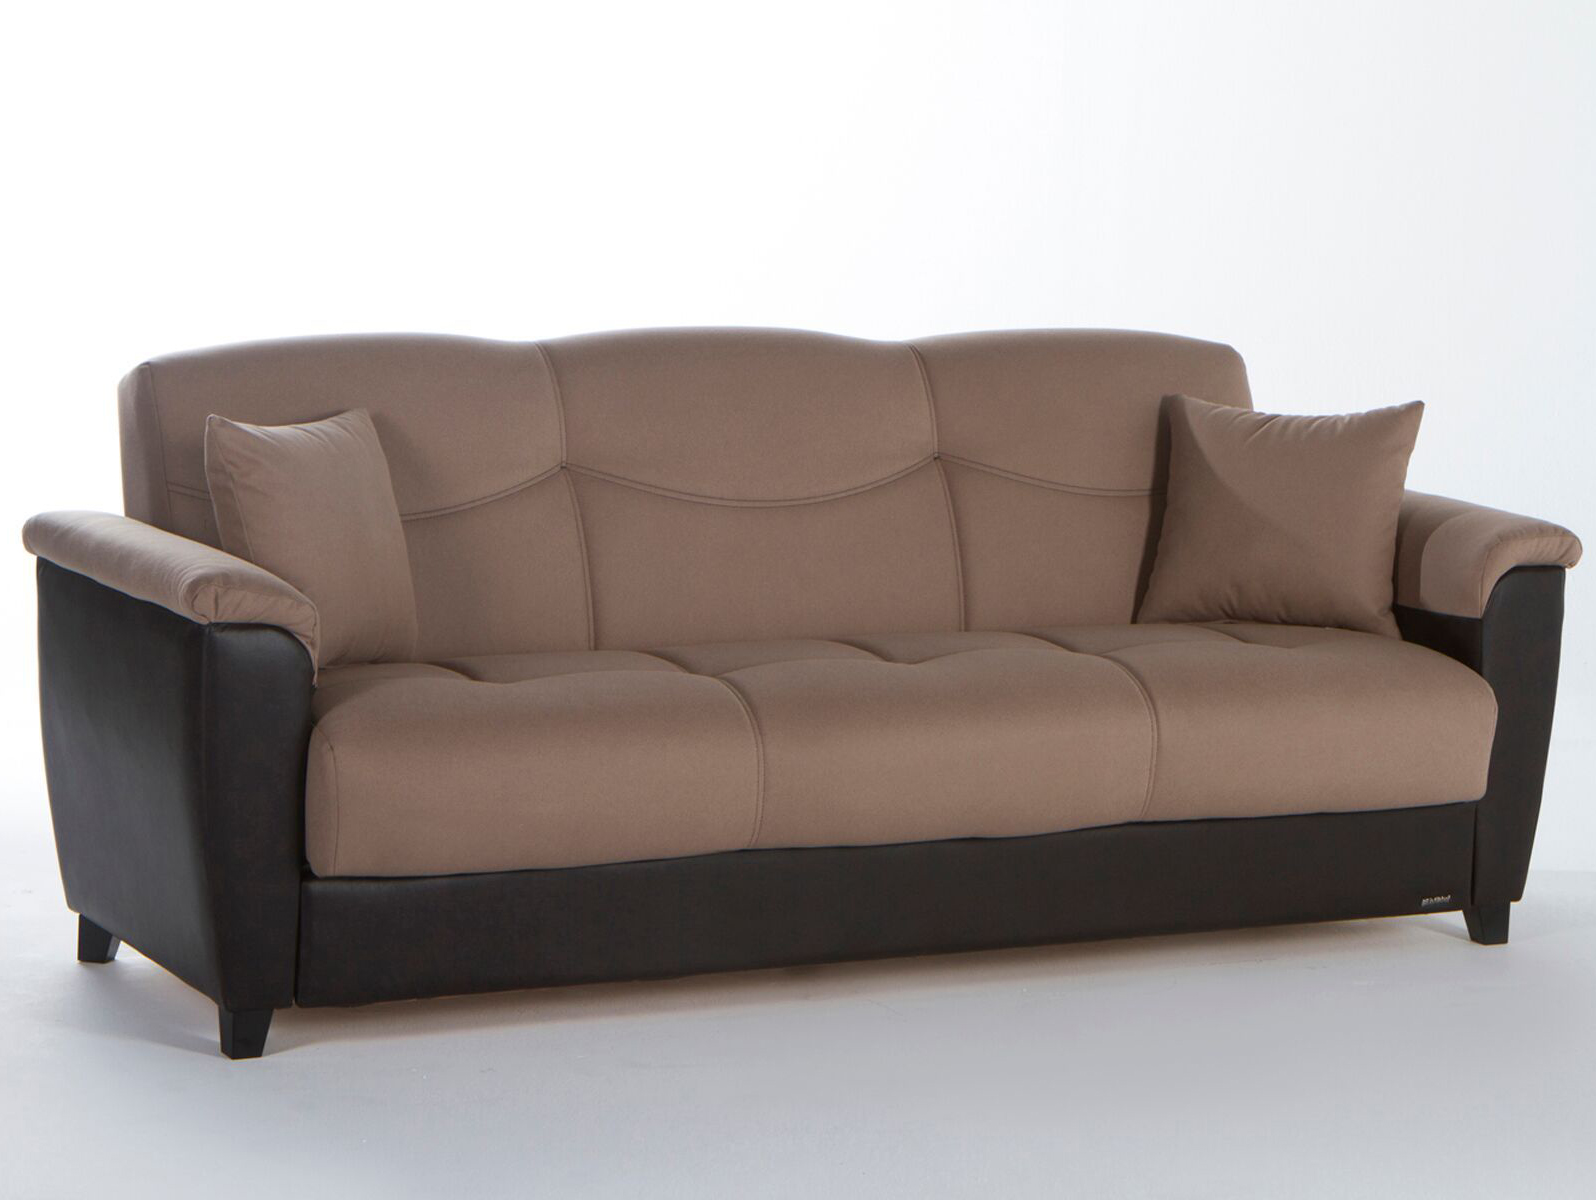 Aspen Soft Sofa Sleeper Italmoda Furniture Store